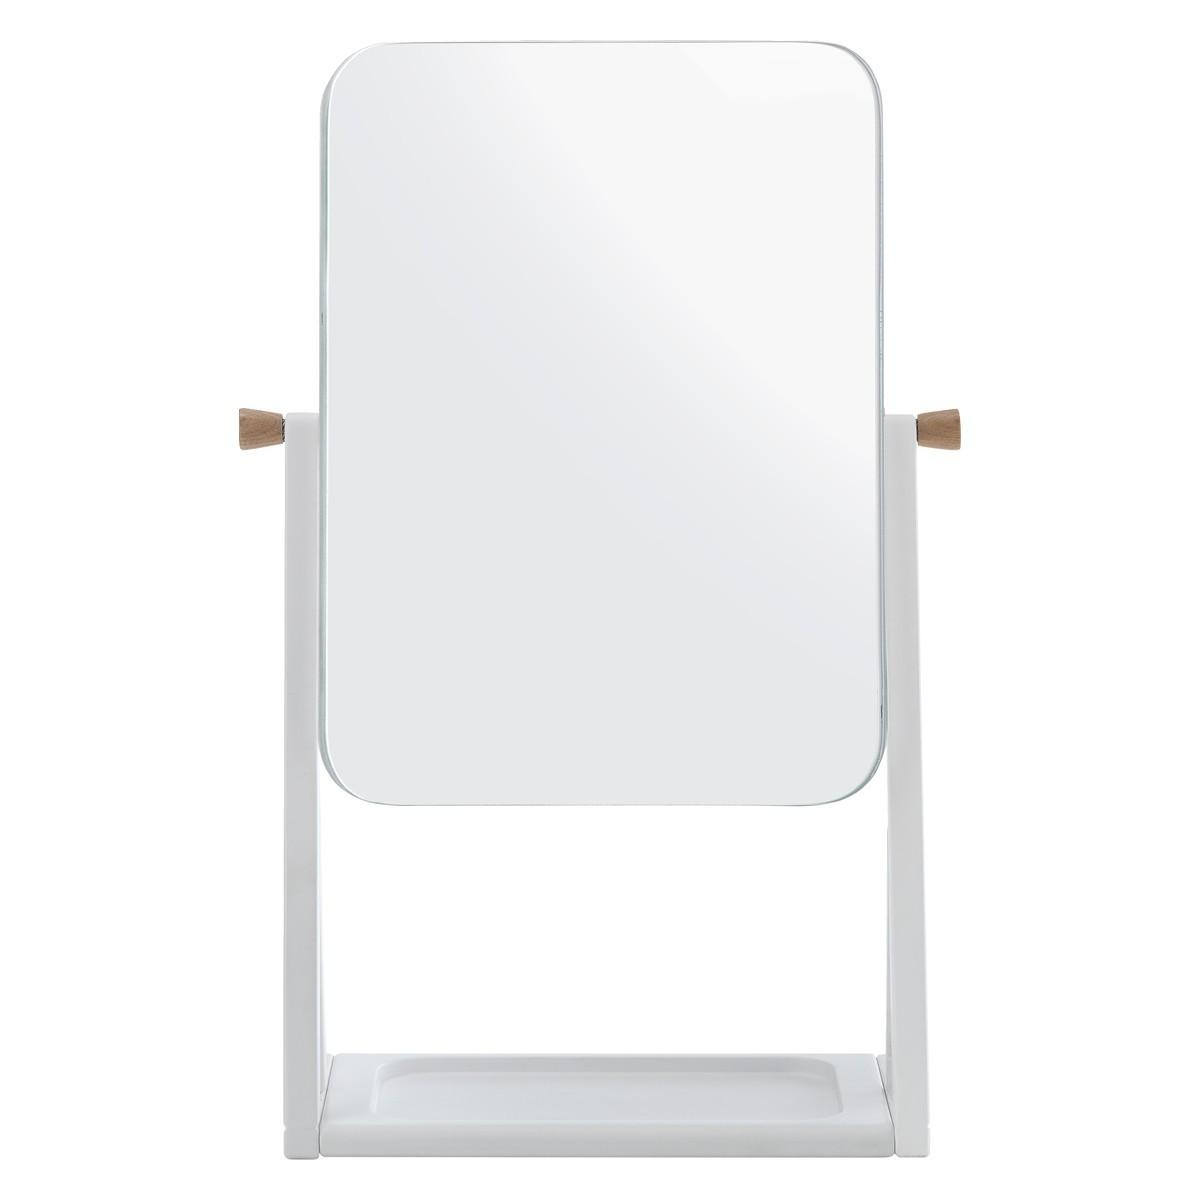 Tatsuma White Dressing Table Mirror | Buy Now At Habitat Uk In Dressing Table Mirror (Image 17 of 20)